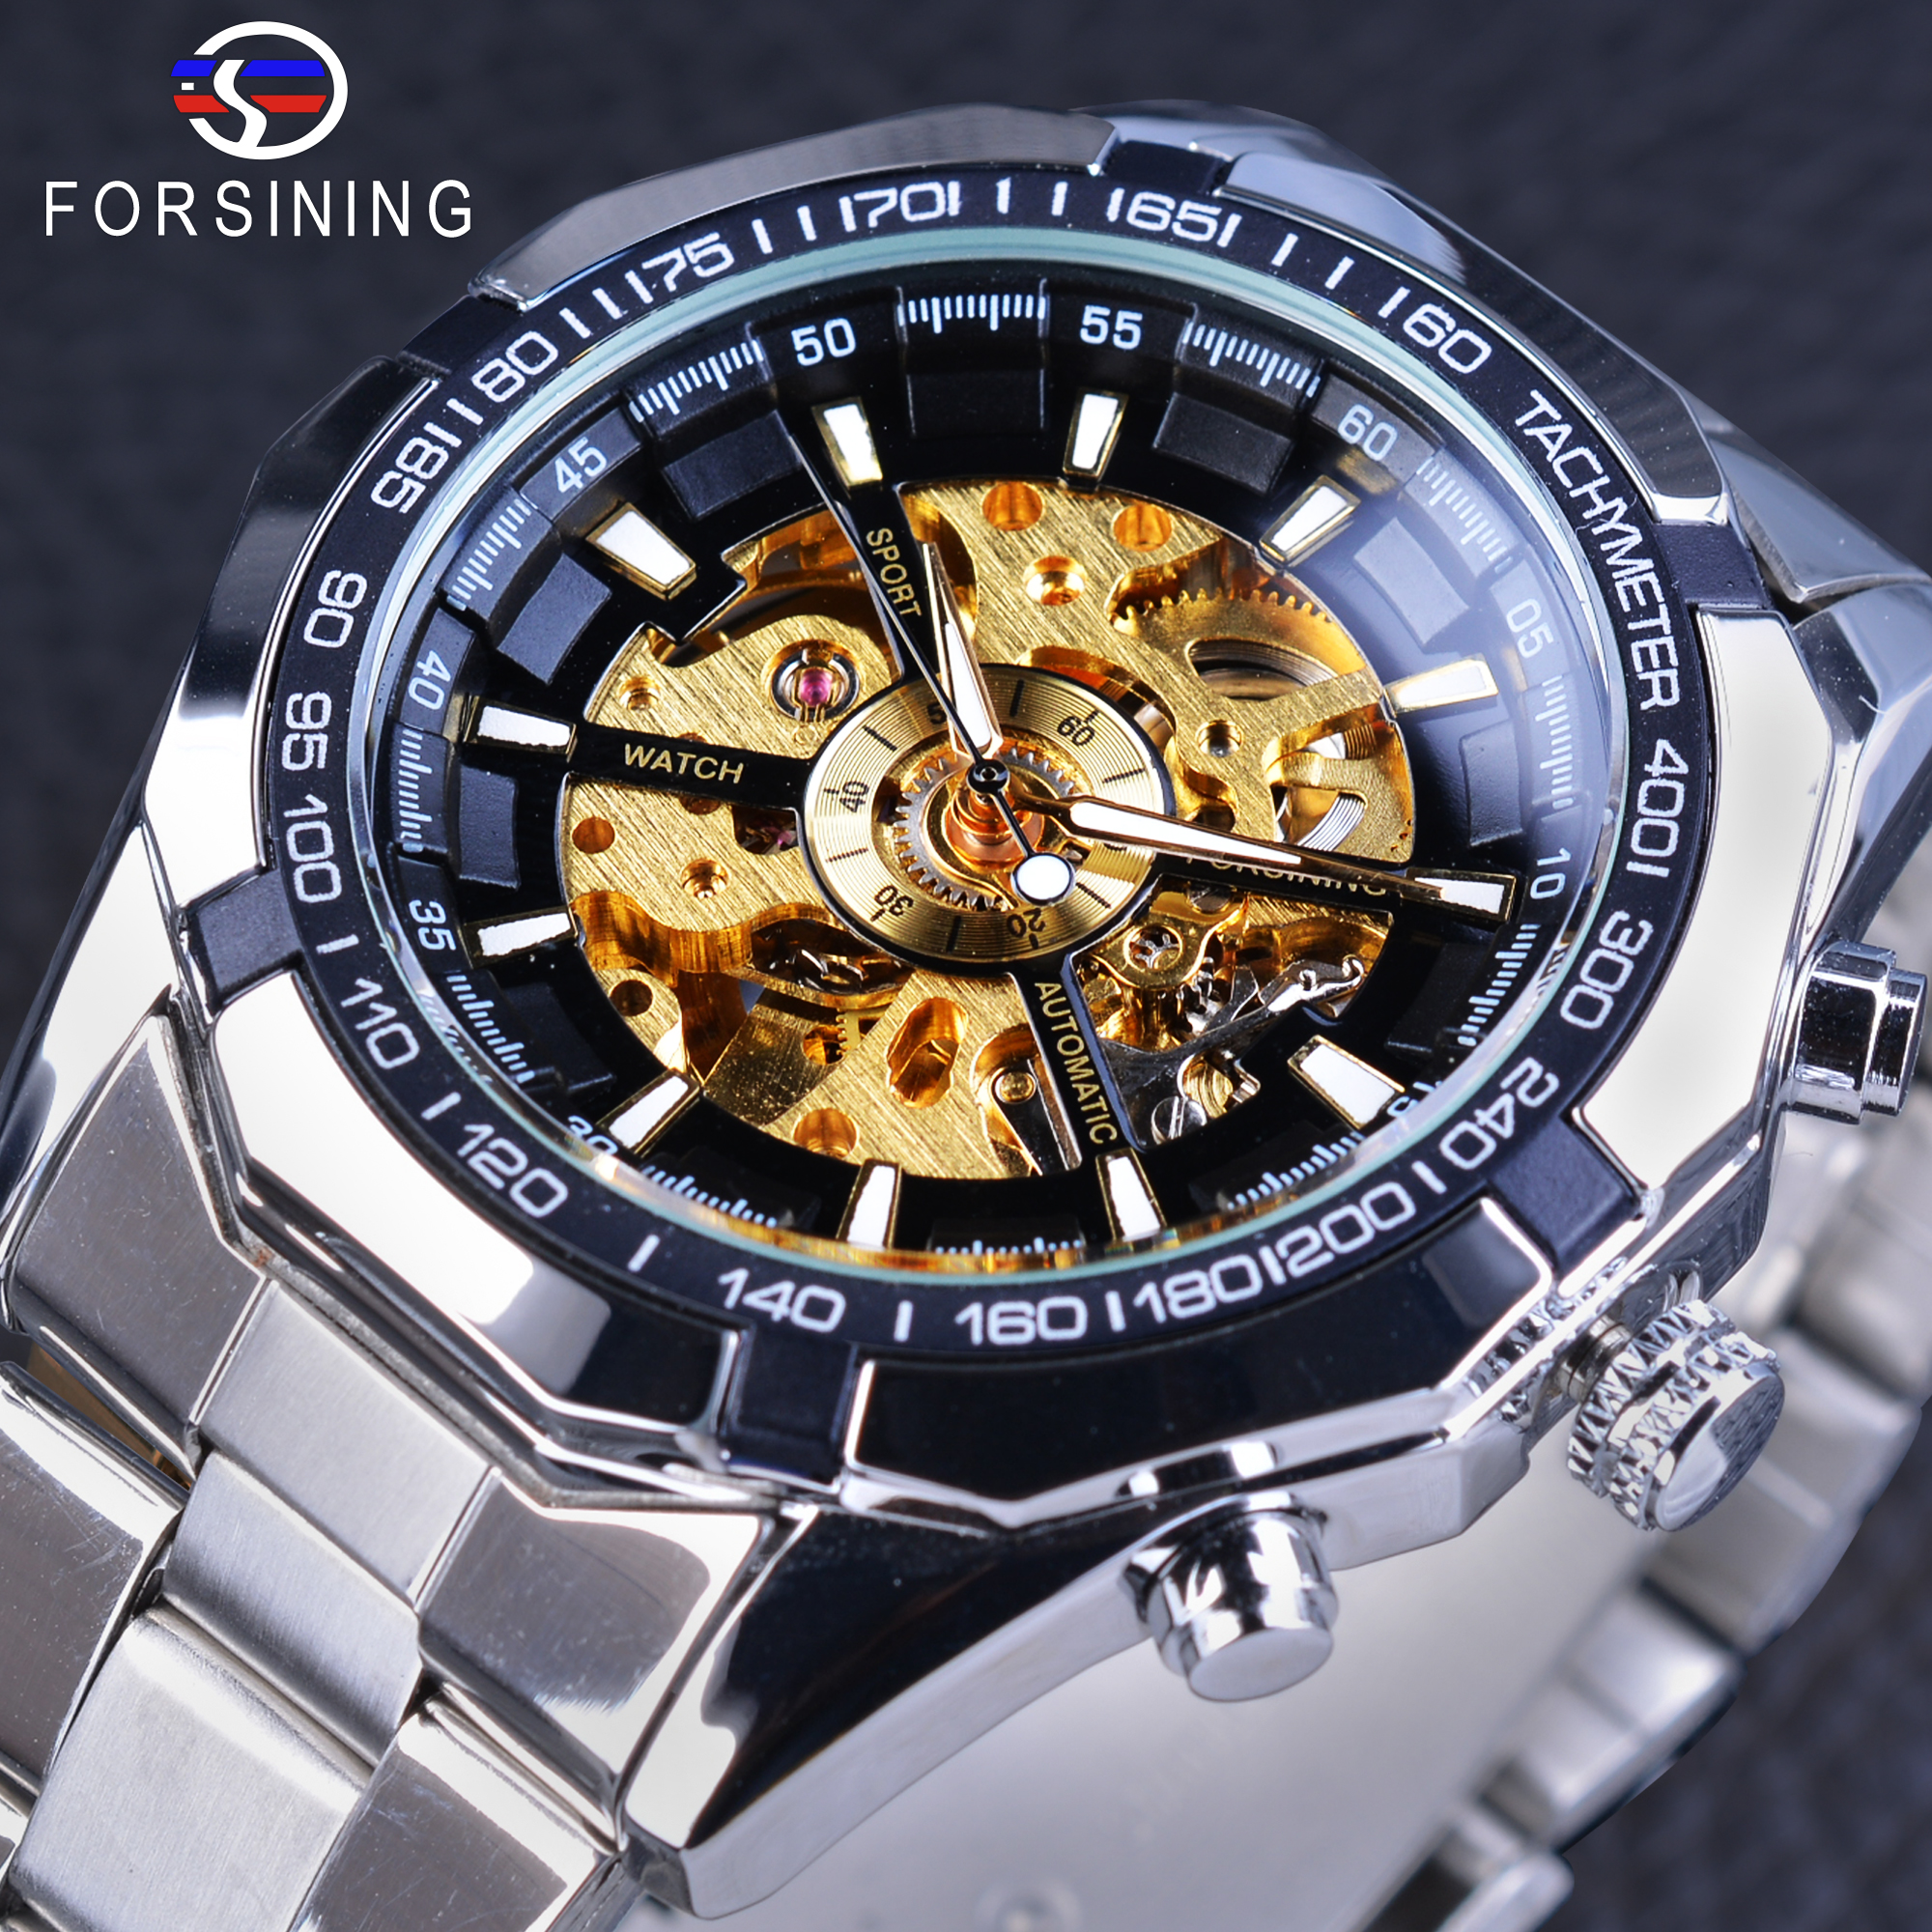 a impressive diving offers luxx article great watch eight s its making splash methode and diver fitted for to is money value considering watches high specification resistant water diameter waterproof times pontos the